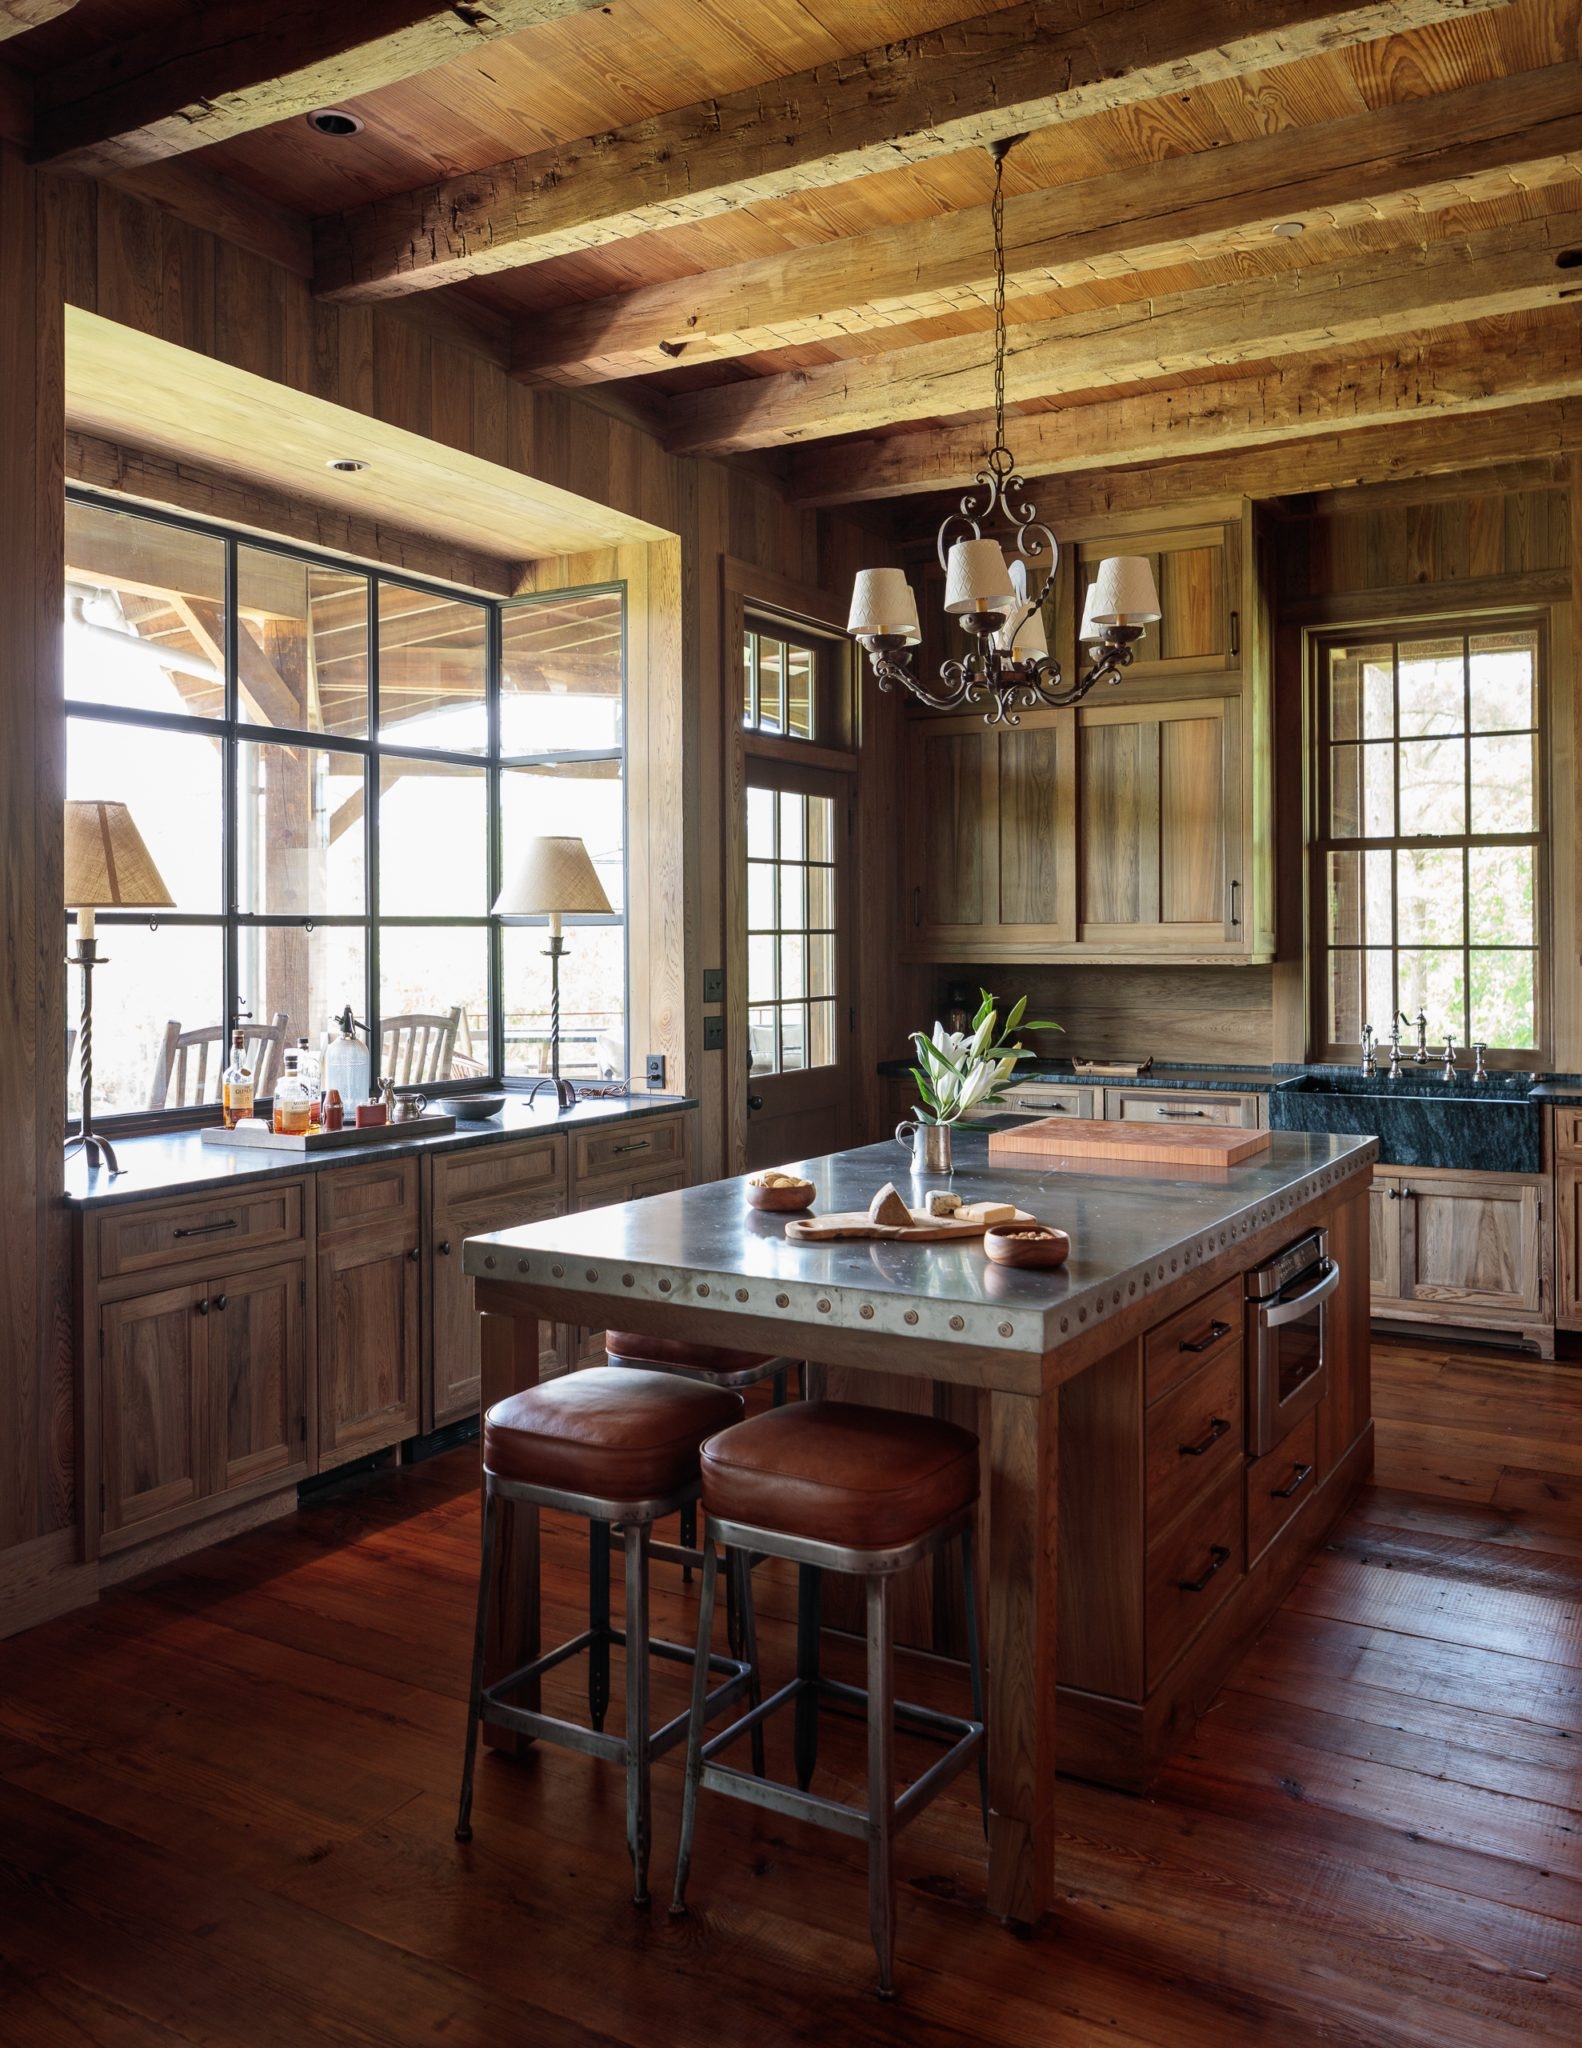 South Carolina Hunting Lodge Kitchen by The Design Atelier